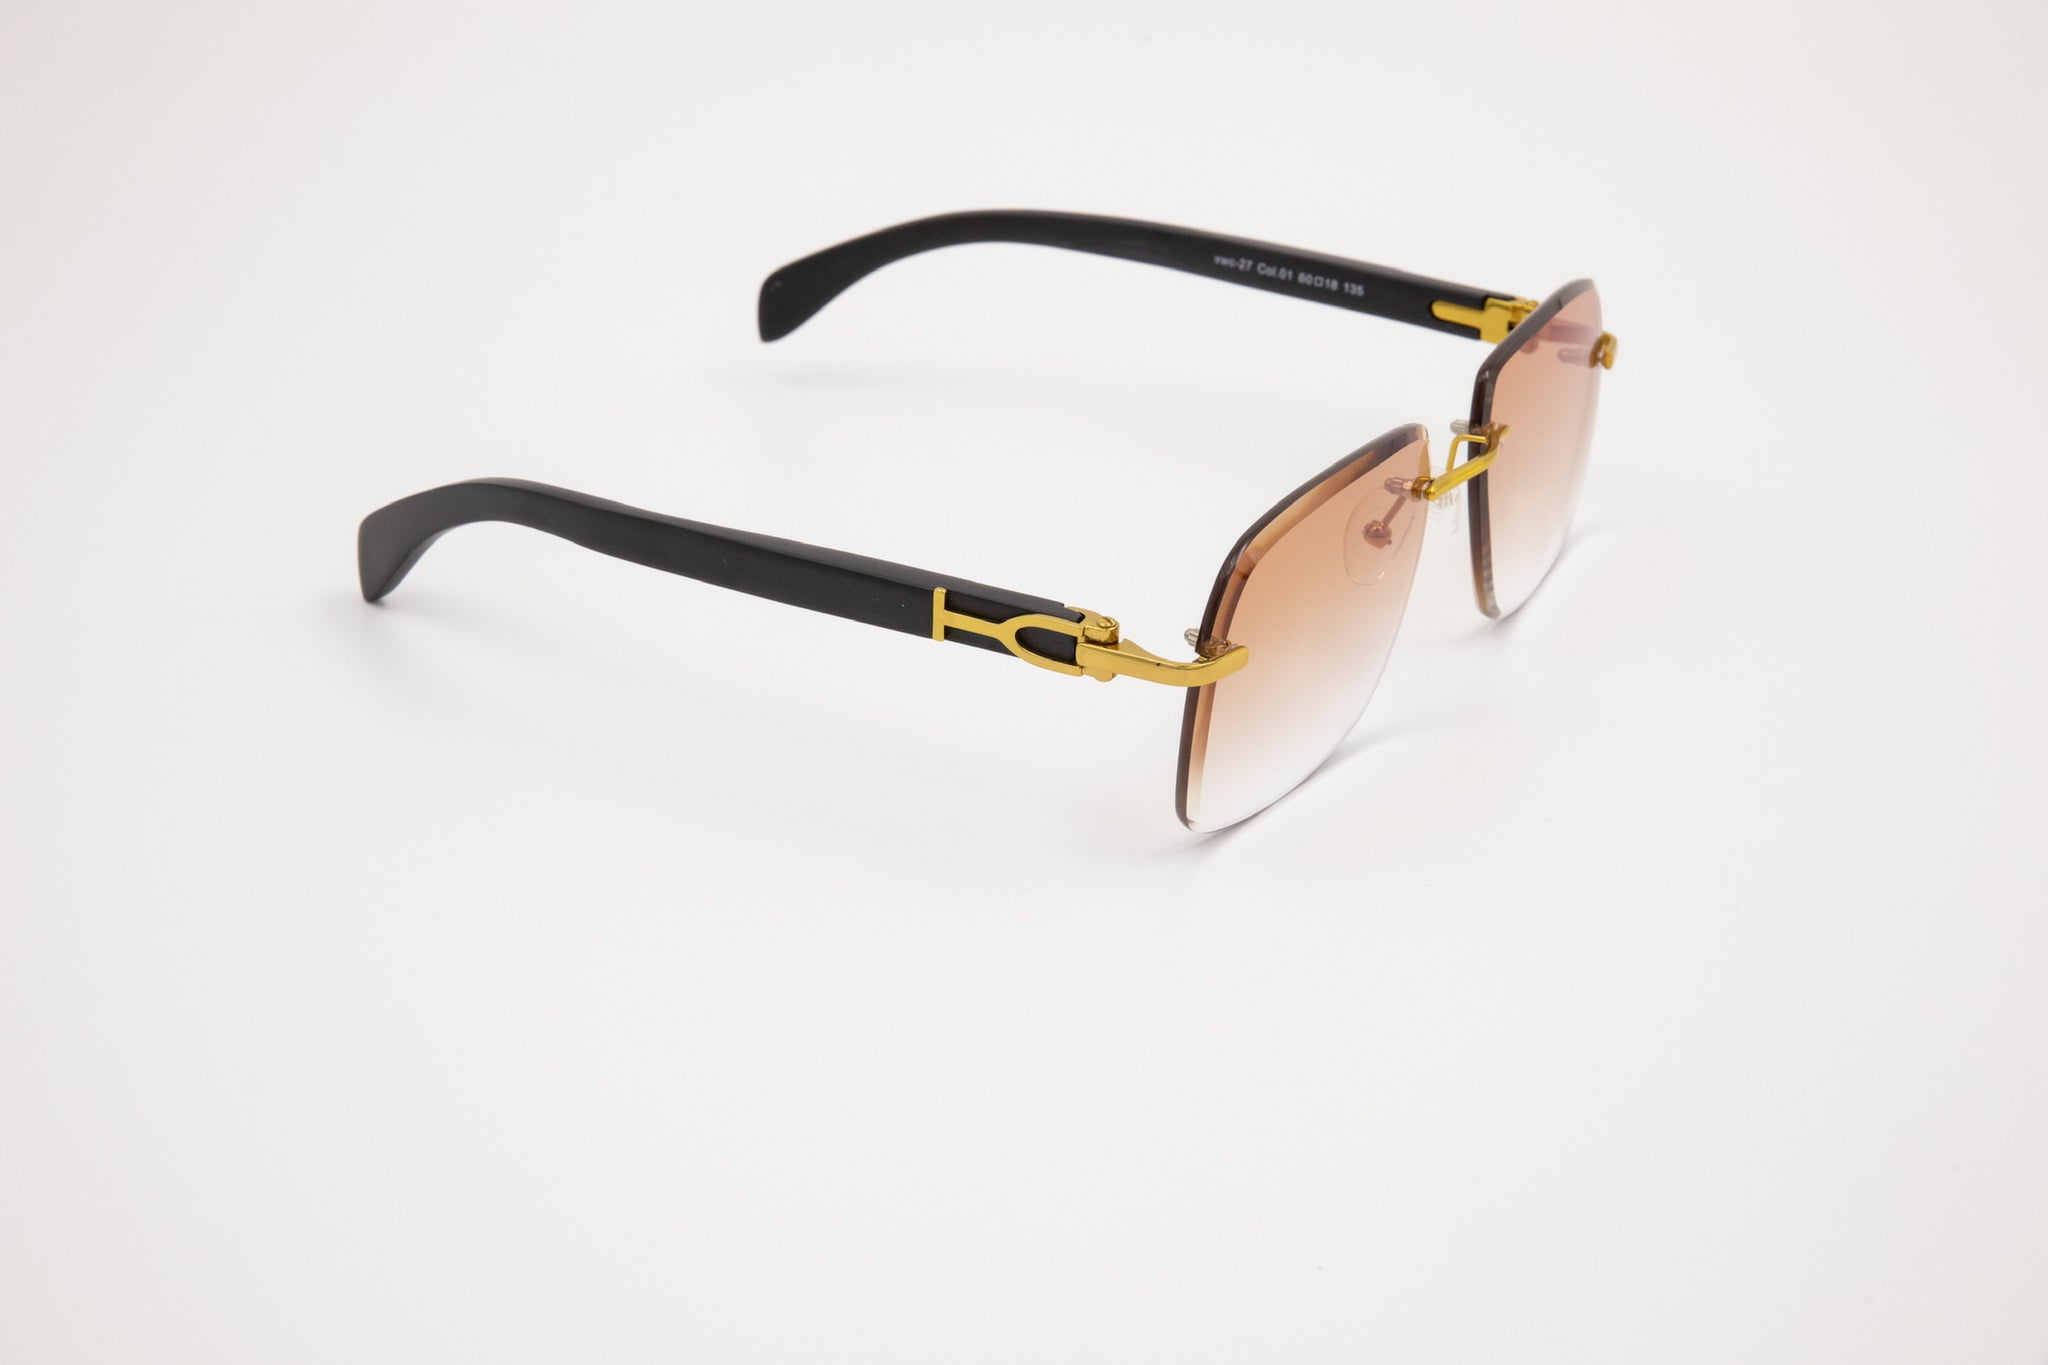 Gold and Black Wood Sunglasses, Gradient Brown Anti Reflective Bevel Lenses, Rimless Frame